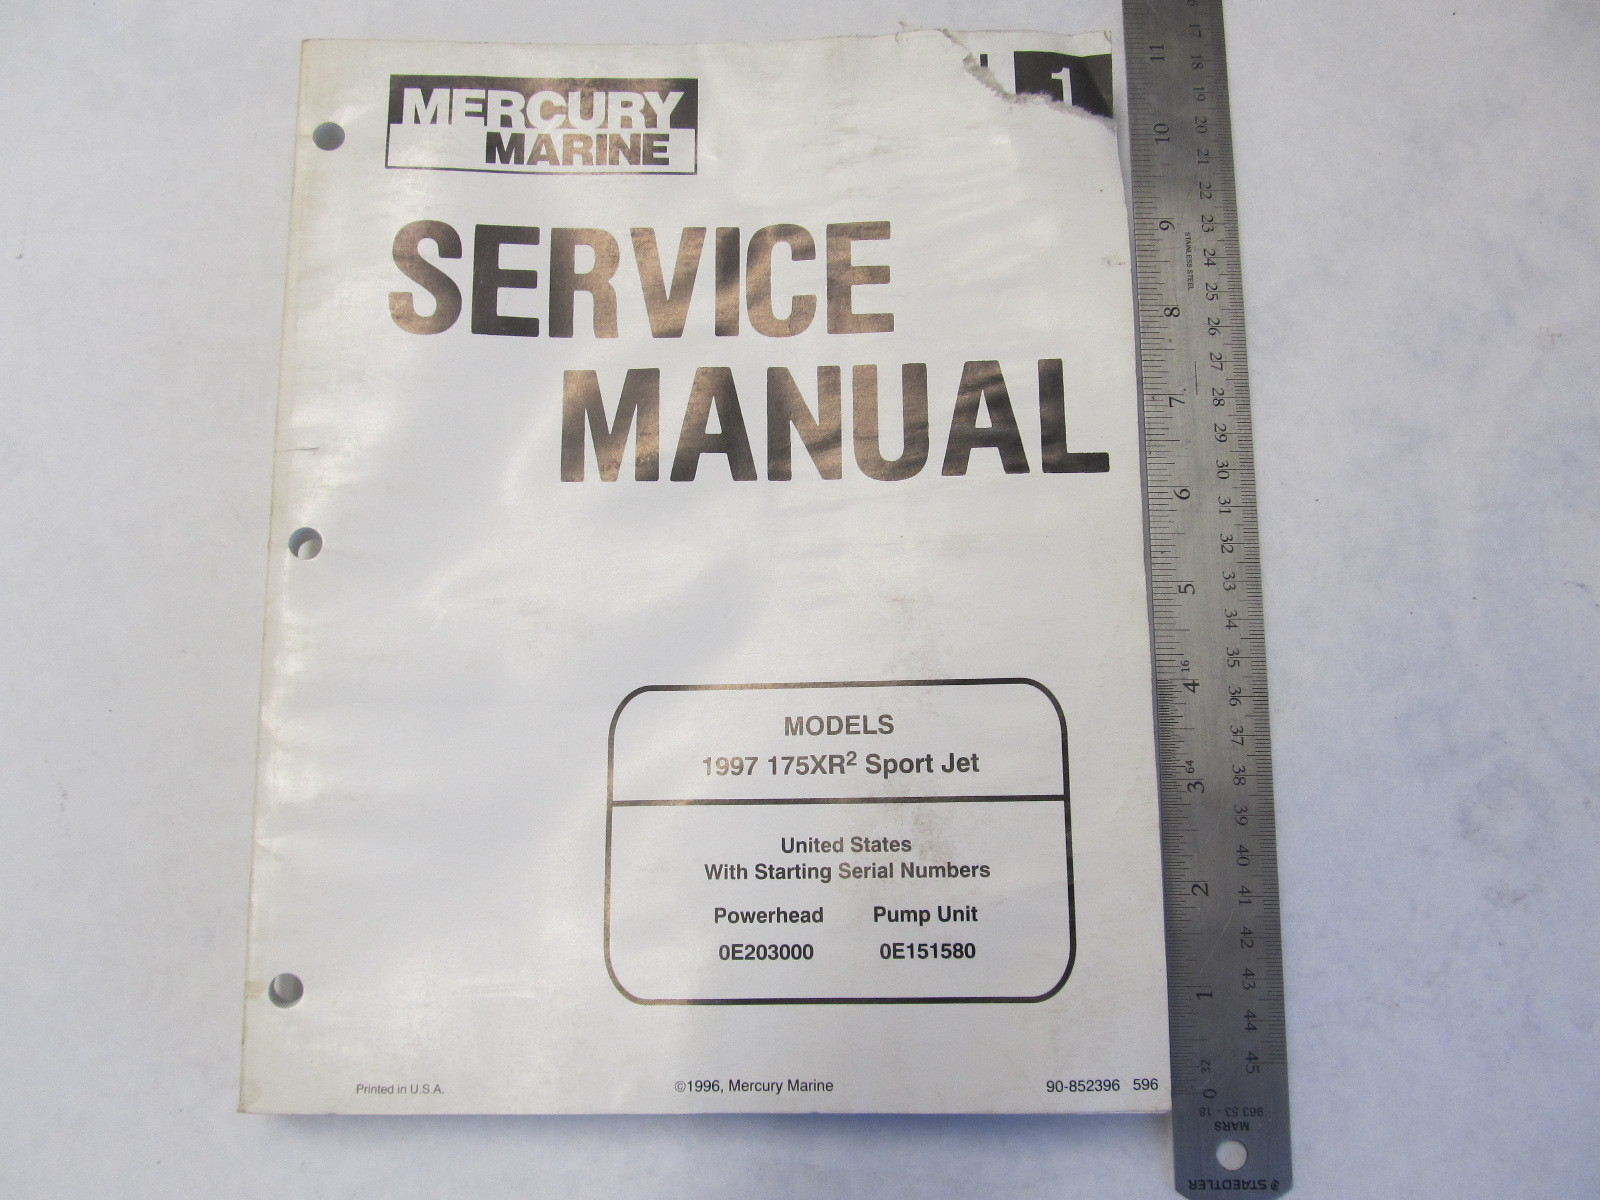 Mercury 175 Xr2 Manual Wiring Diagram For 150 Mercruiser 90 852396r1 Service Array Rh Logoutev De